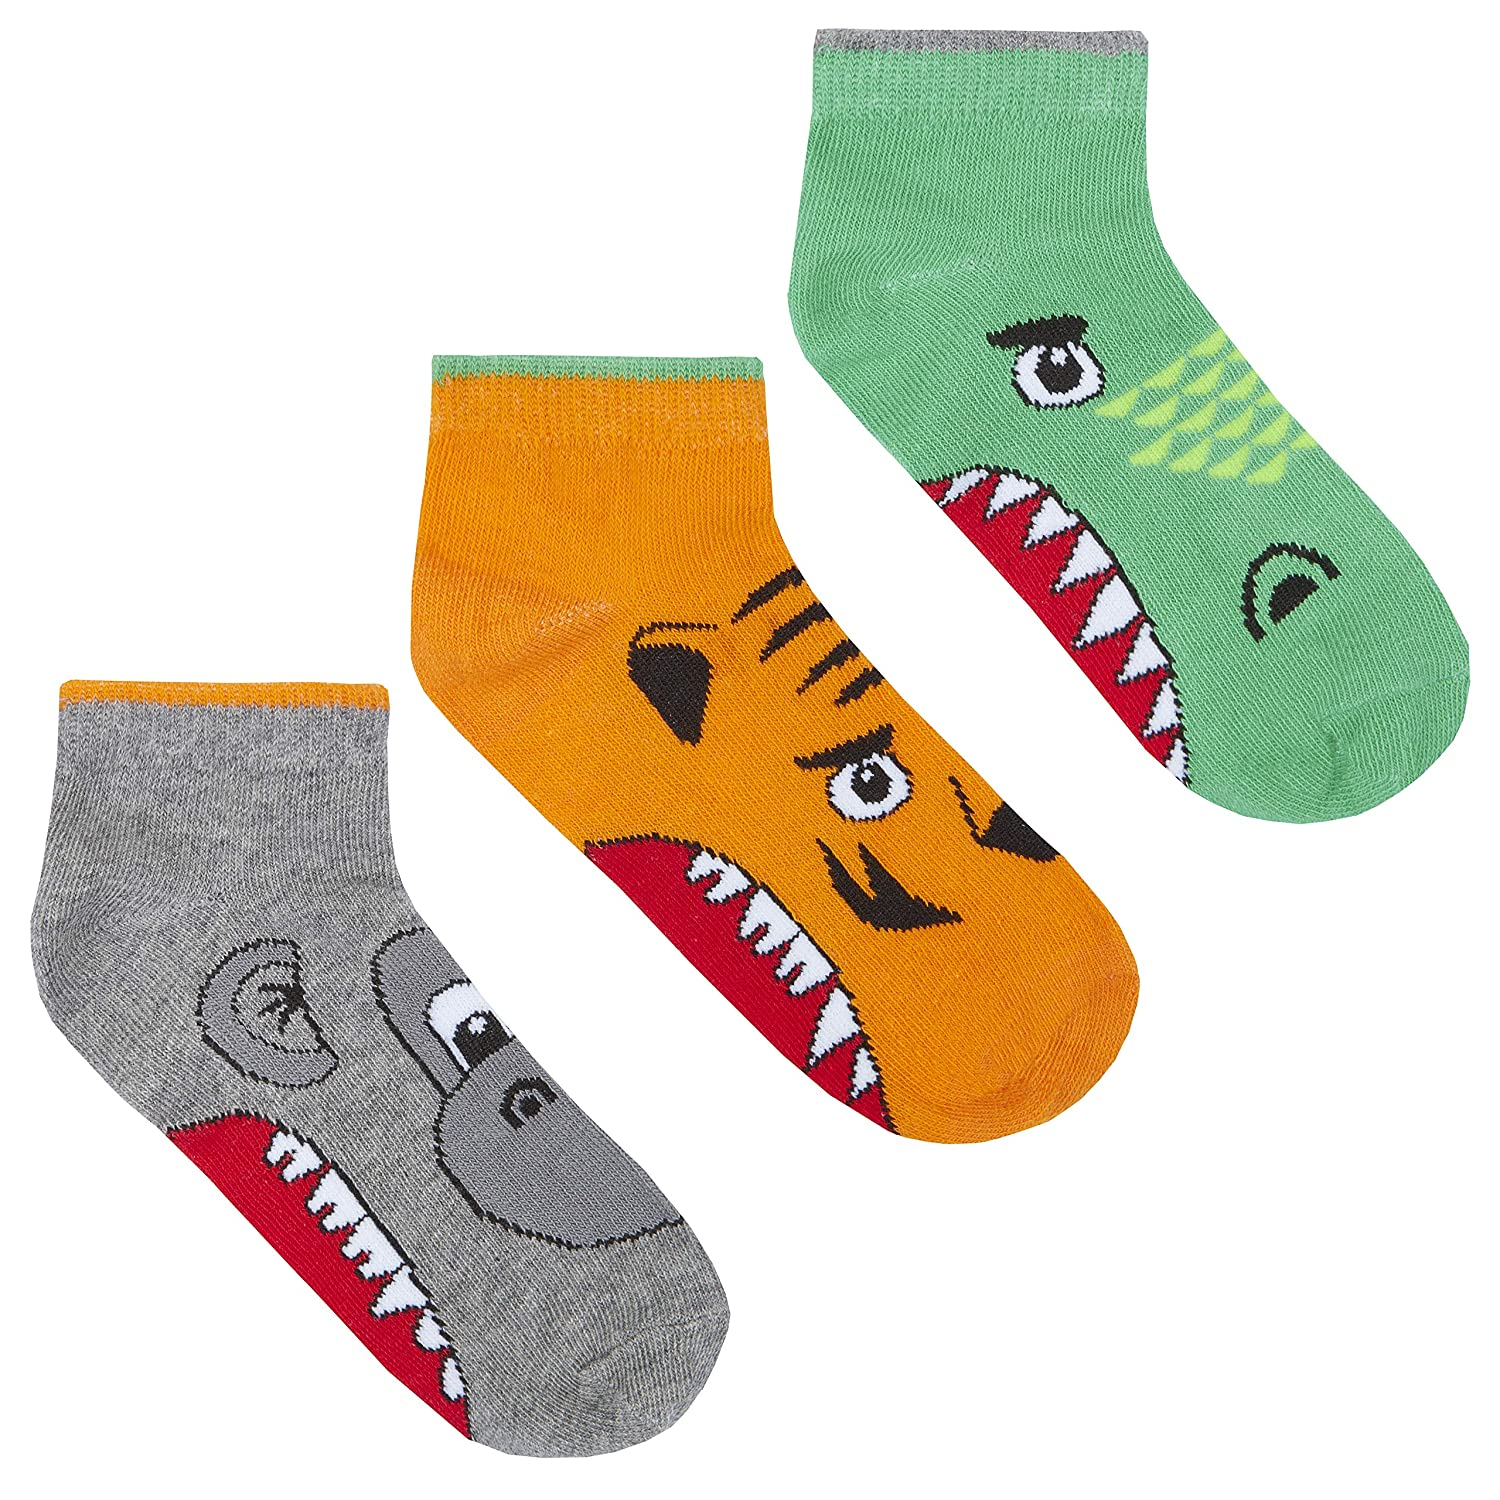 Boys 3 Pk Novelty Cotton Rich Socks